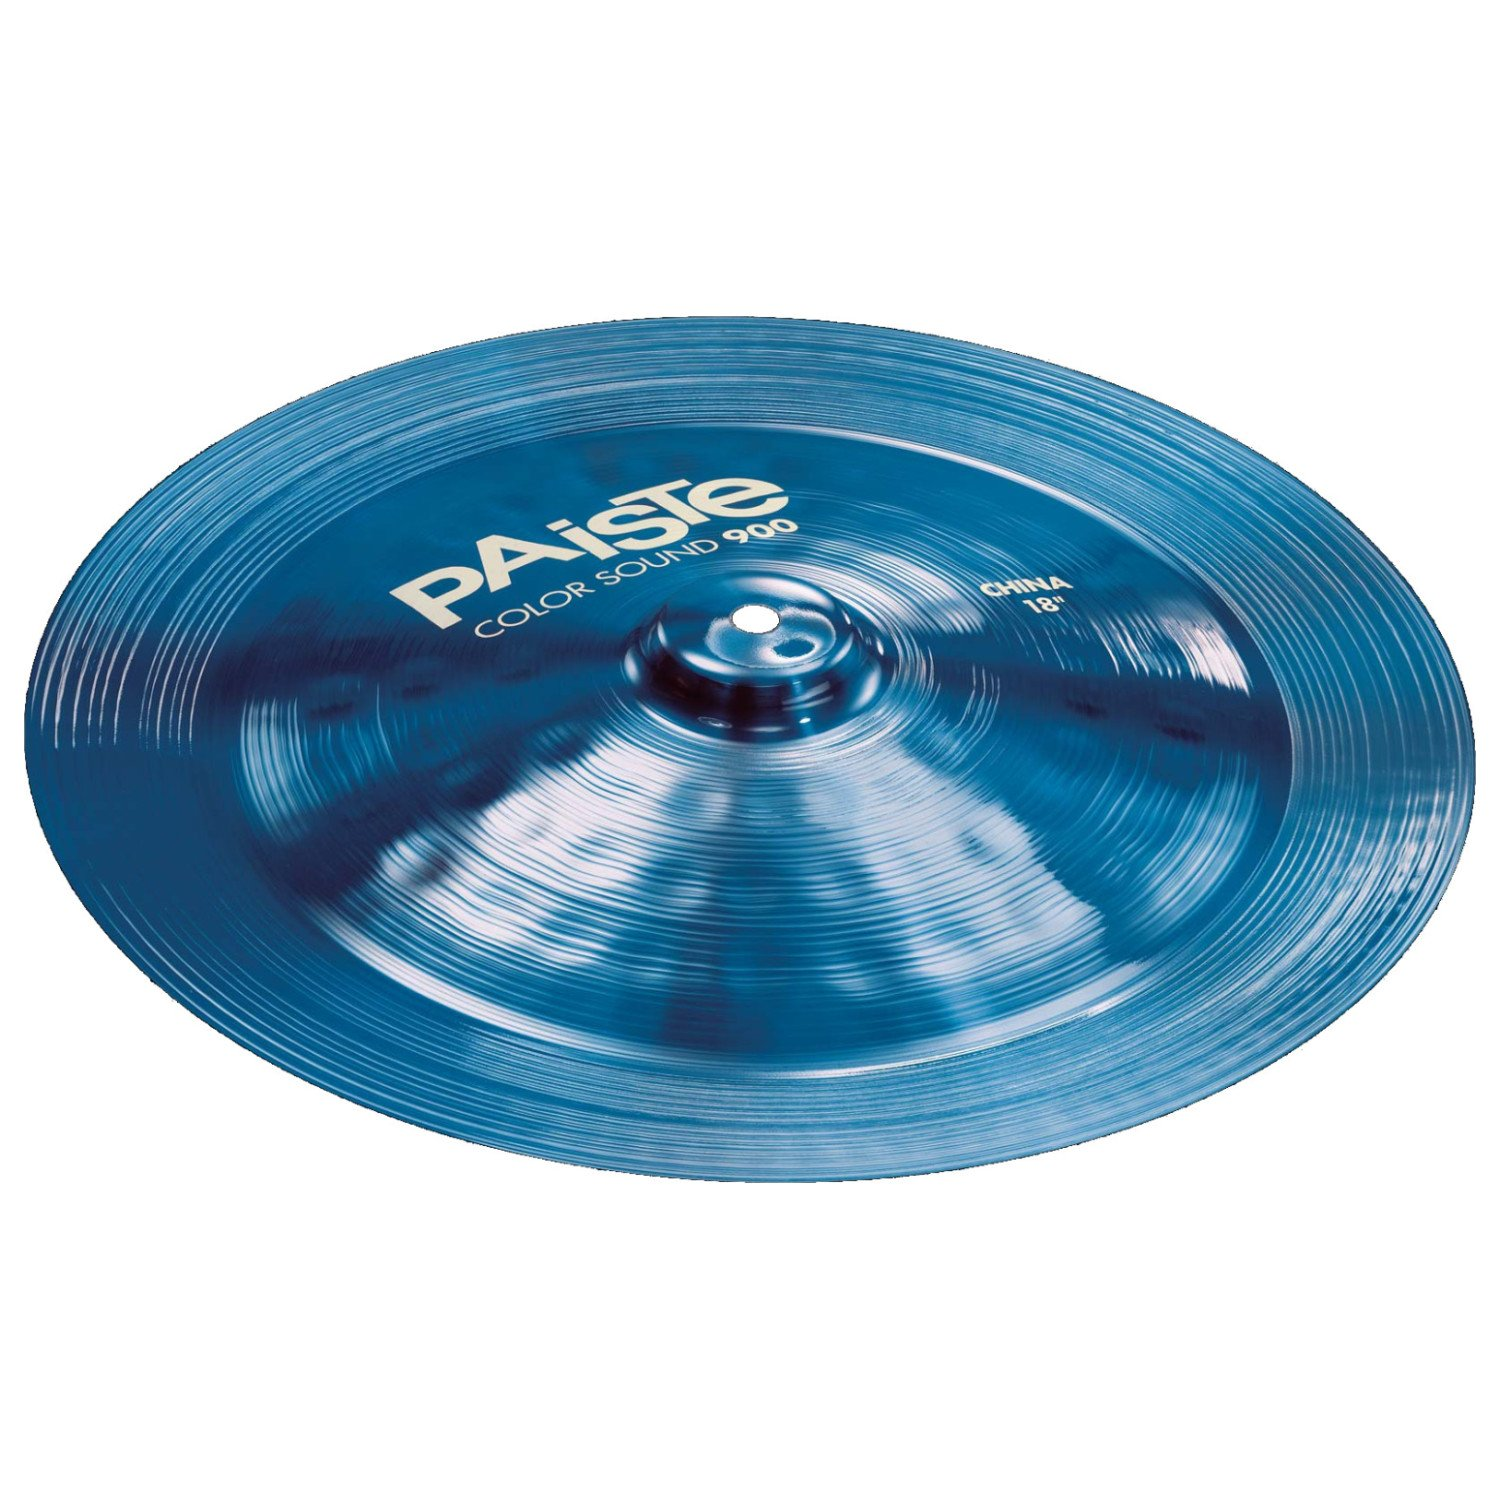 Paiste 900 Color Sound 18 Inch BLUE China Cymbal by Paiste